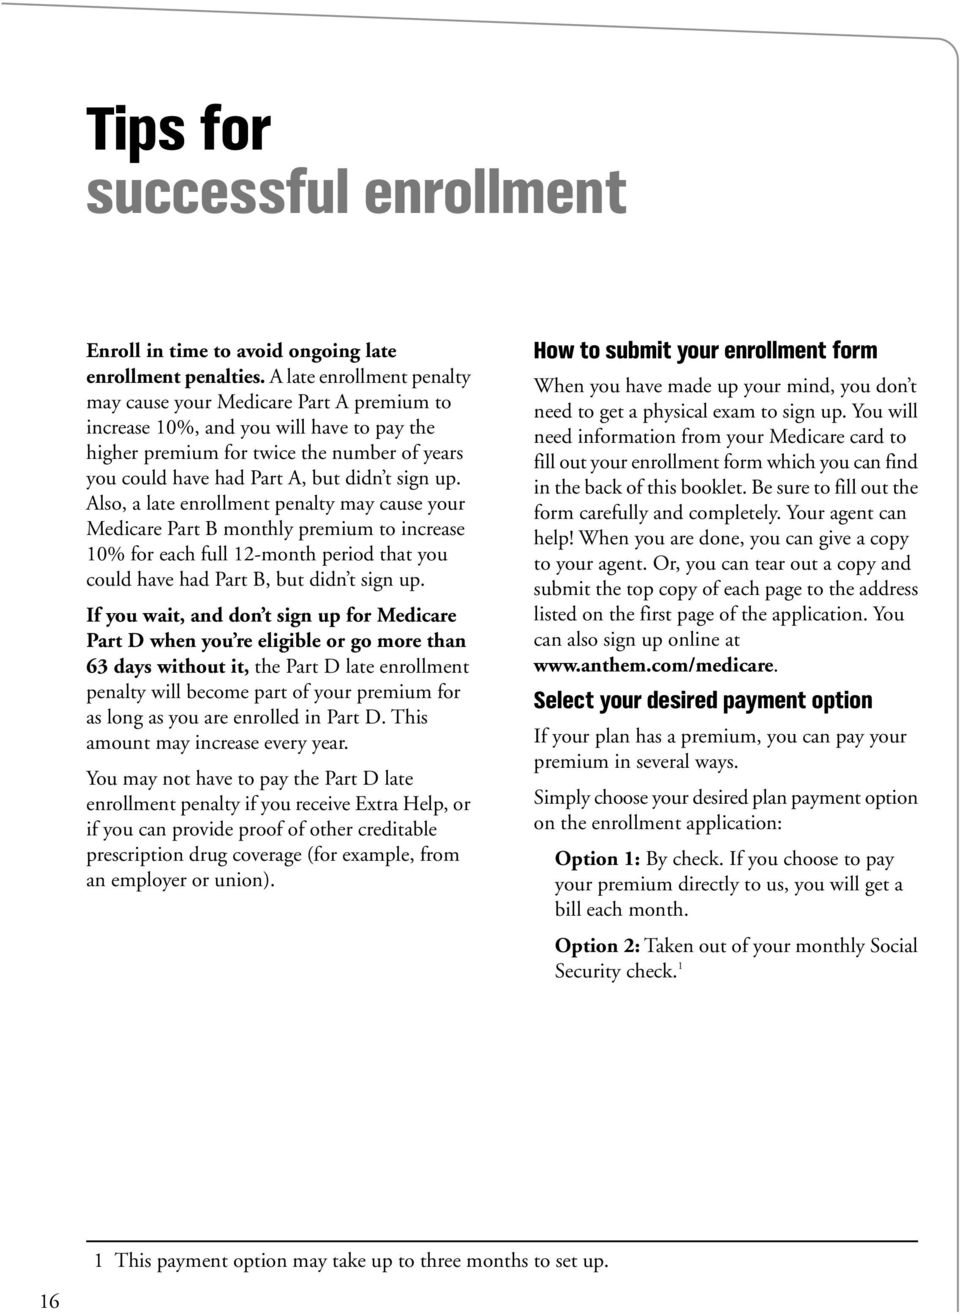 up. Also, a late enrollment penalty may cause your Medicare Part B monthly premium to increase 10% for each full 12-month period that you could have had Part B, but didn t sign up.